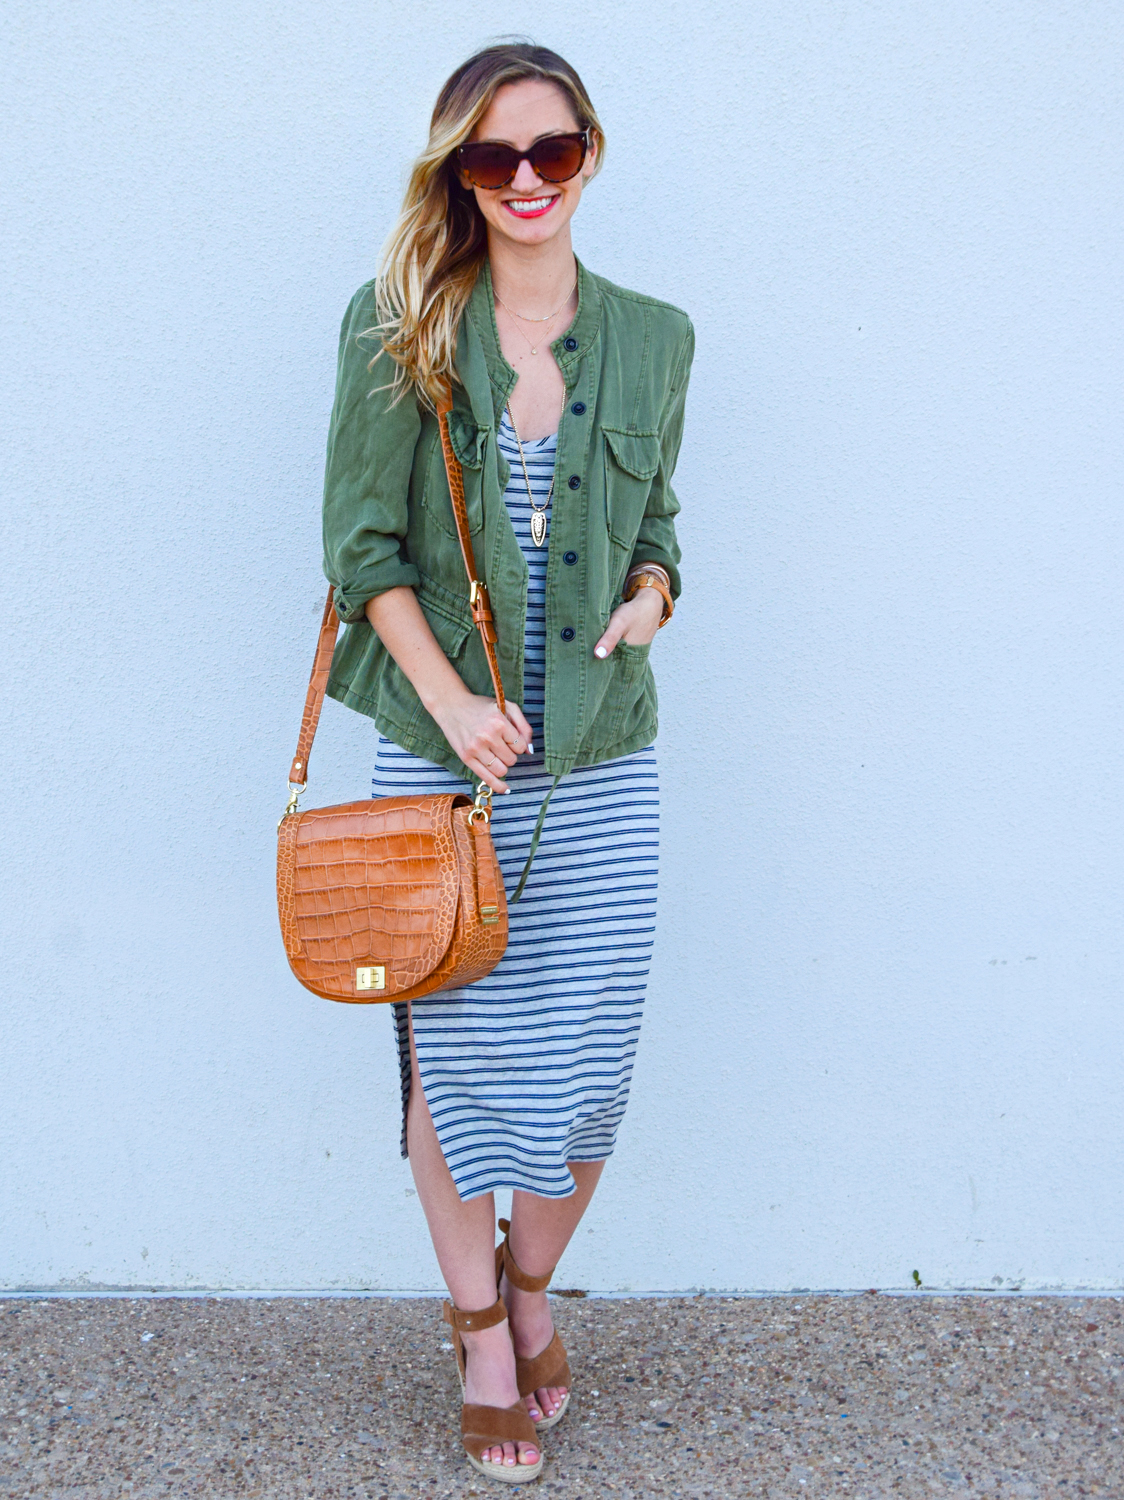 livvyland-blog-olivia-watson-austin-texas-fashion-blogger-striped-midi-dress-green-utility-jacket-brahmin-sonny-crossbody-handbag-prada-cat-eye-sunglasses-casual-outfit-5